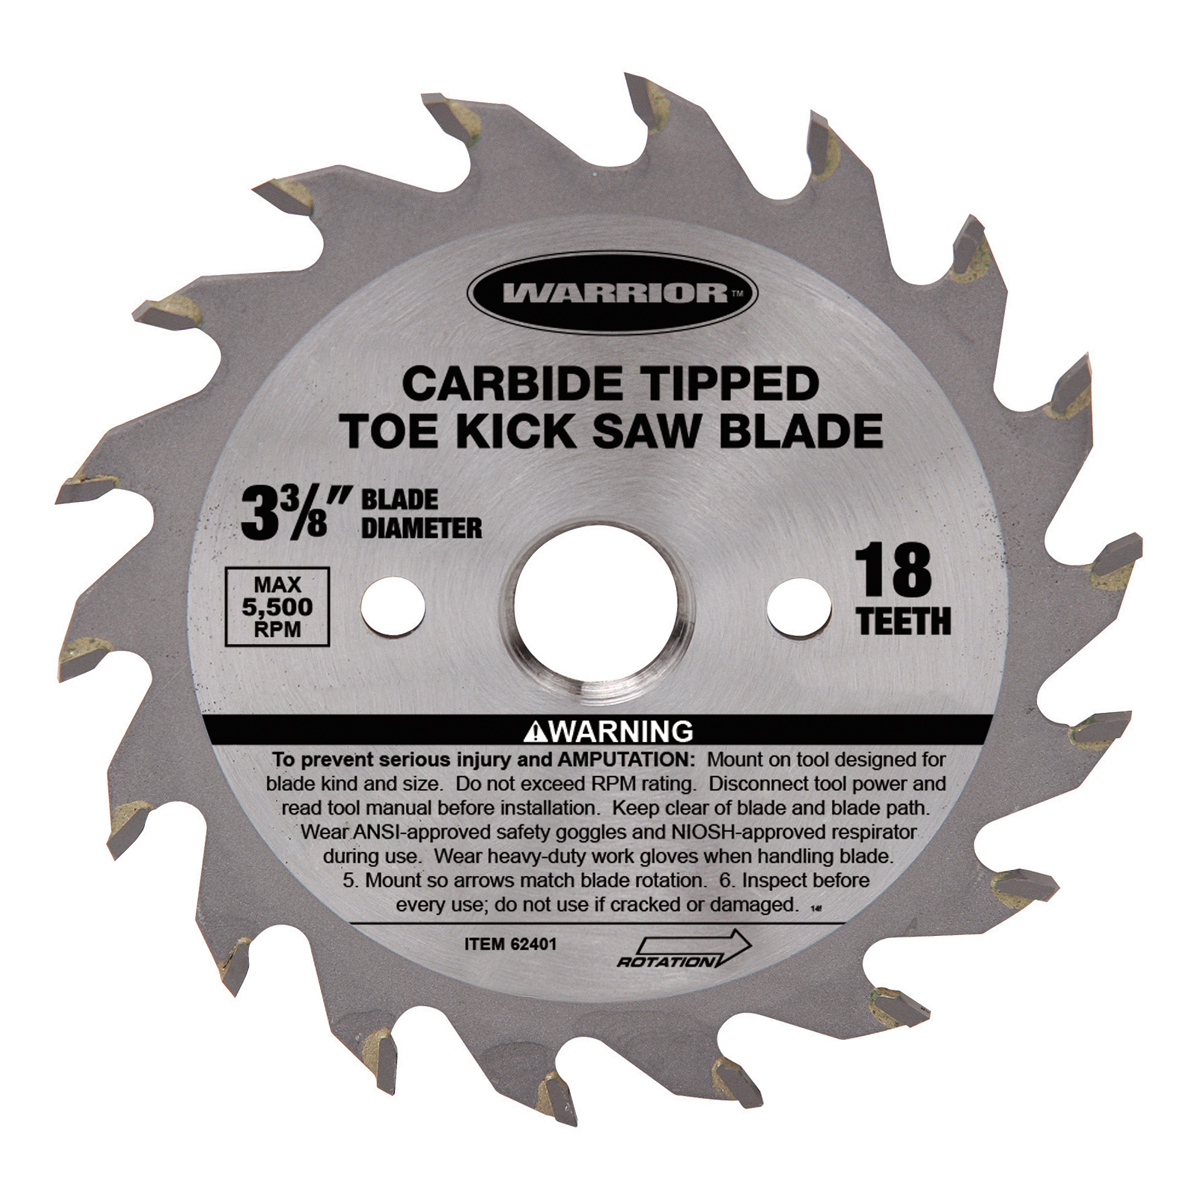 3 38 in 18t toe kick circular saw blade 18t toe kick circular saw blade greentooth Choice Image